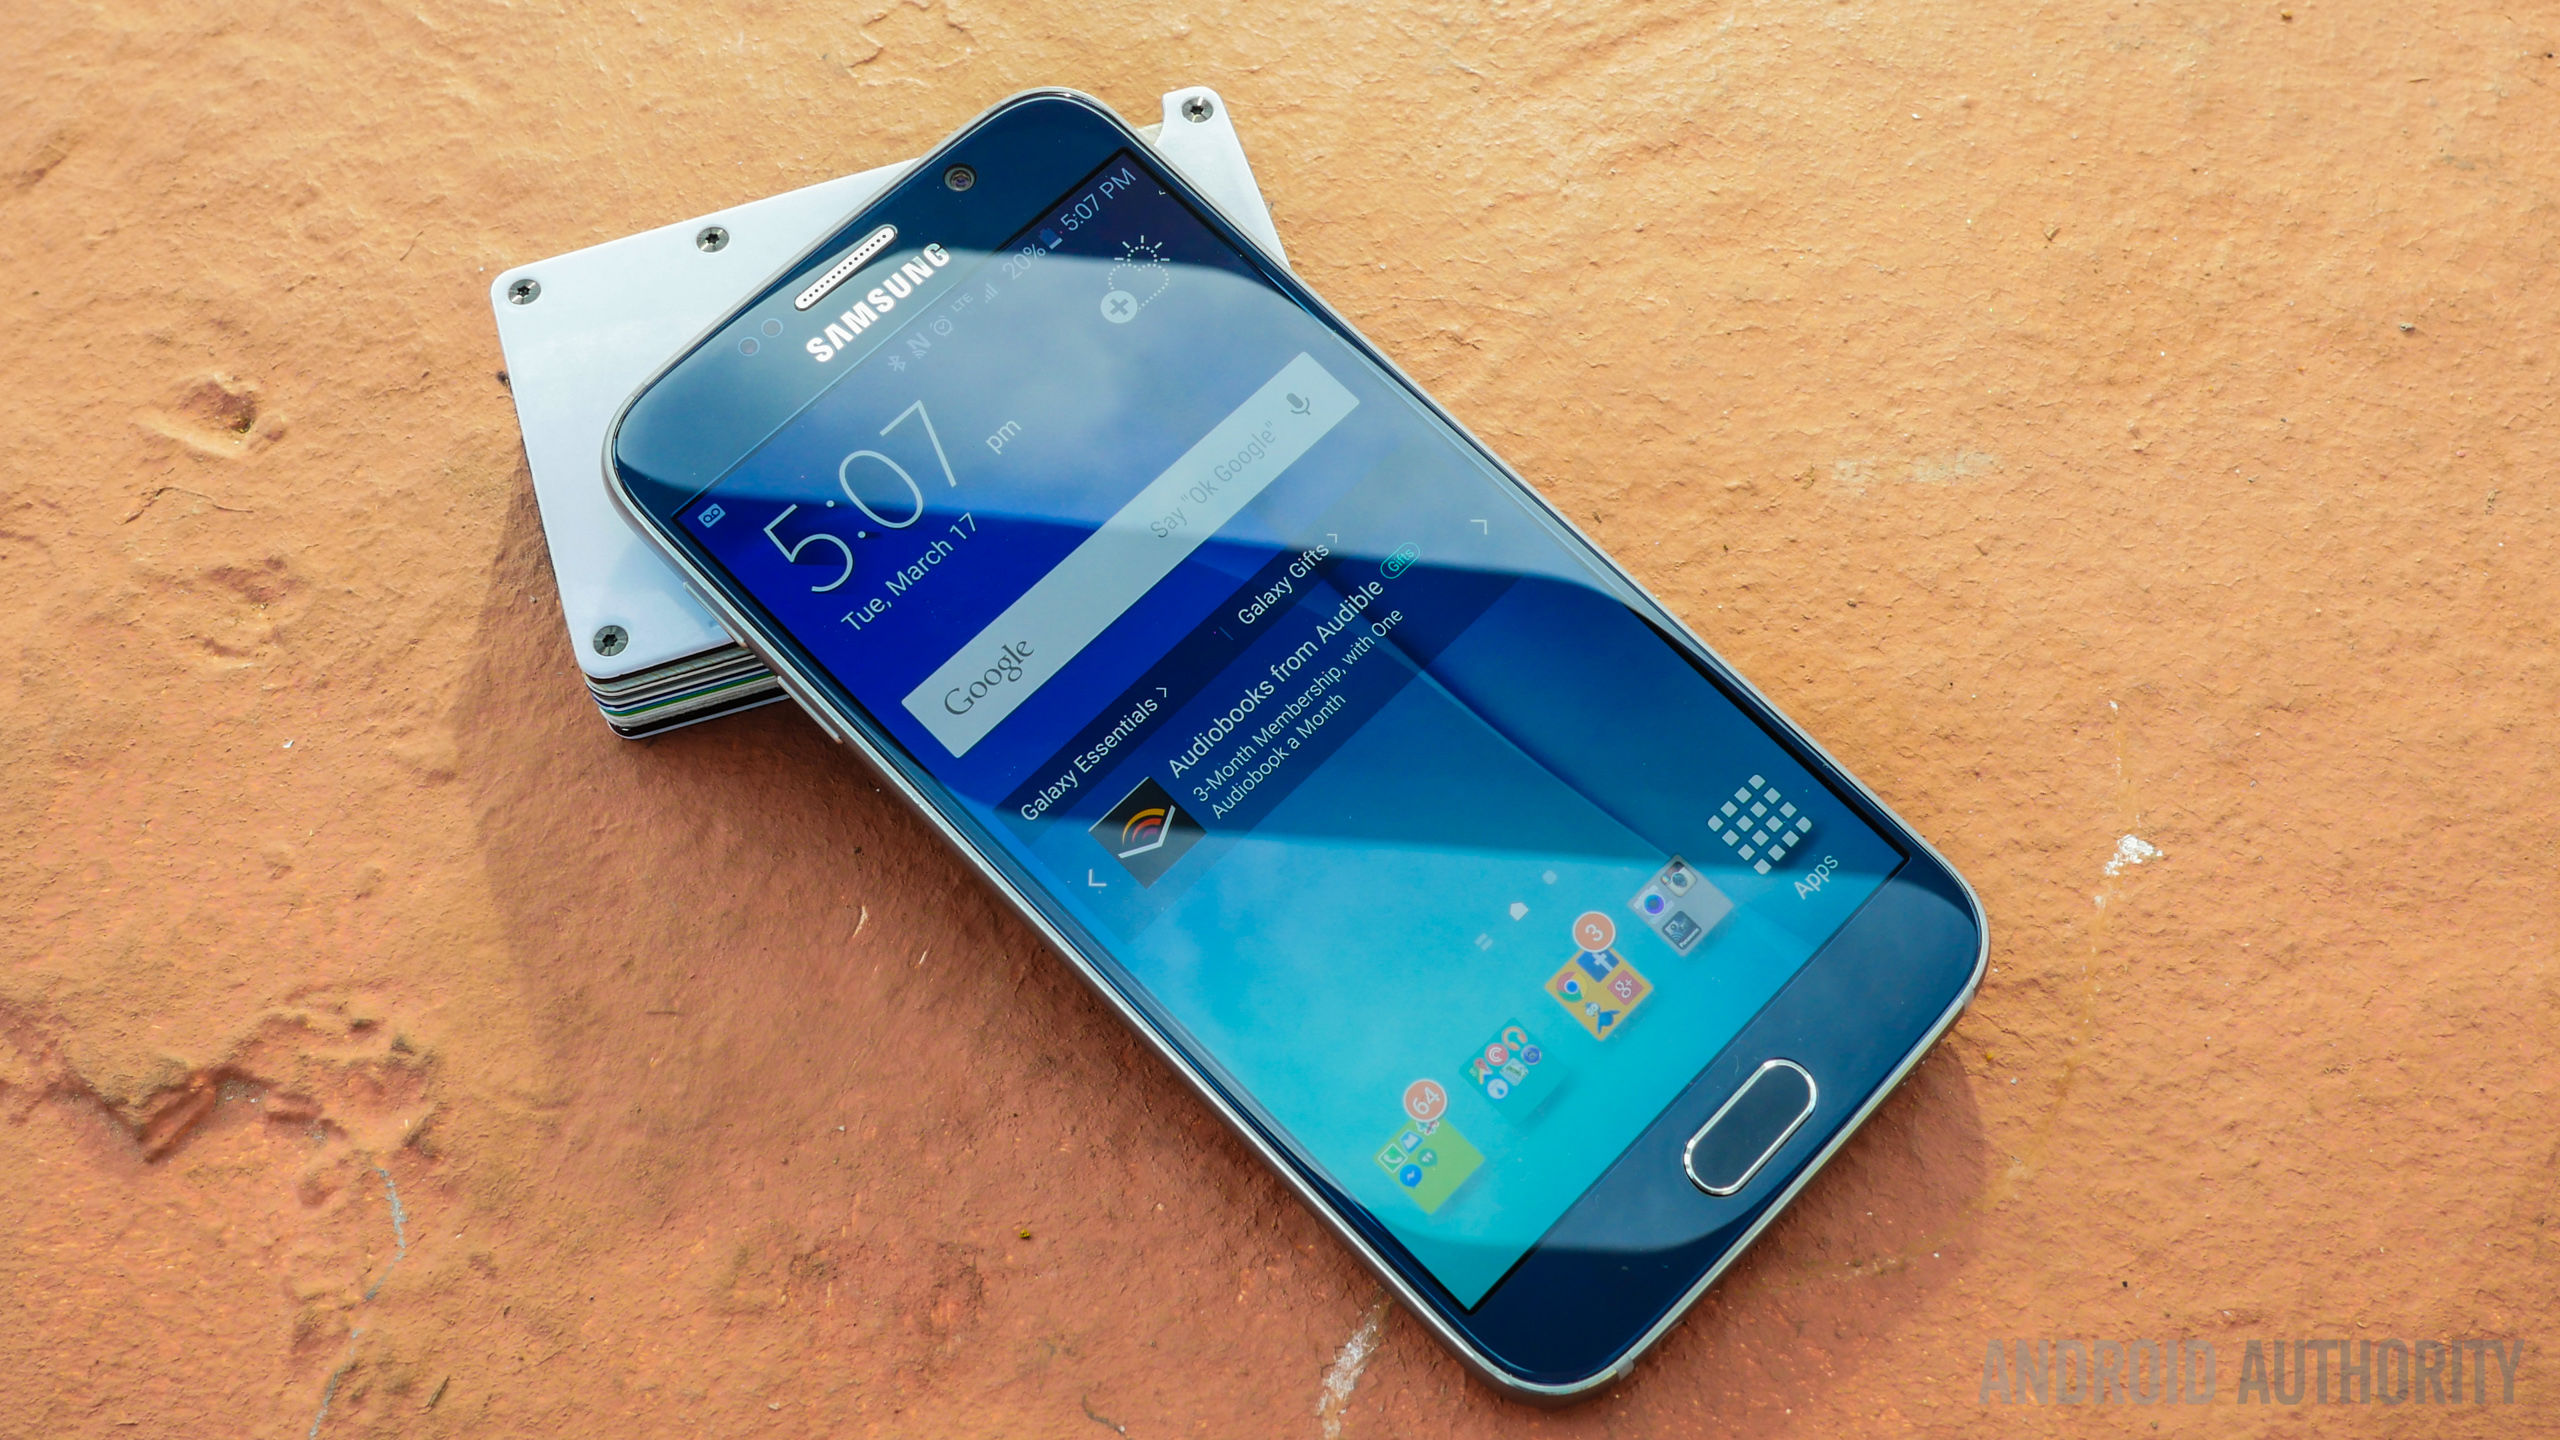 Samsung Galaxy Sky Review 563051 Hd Wallpaper Backgrounds Download